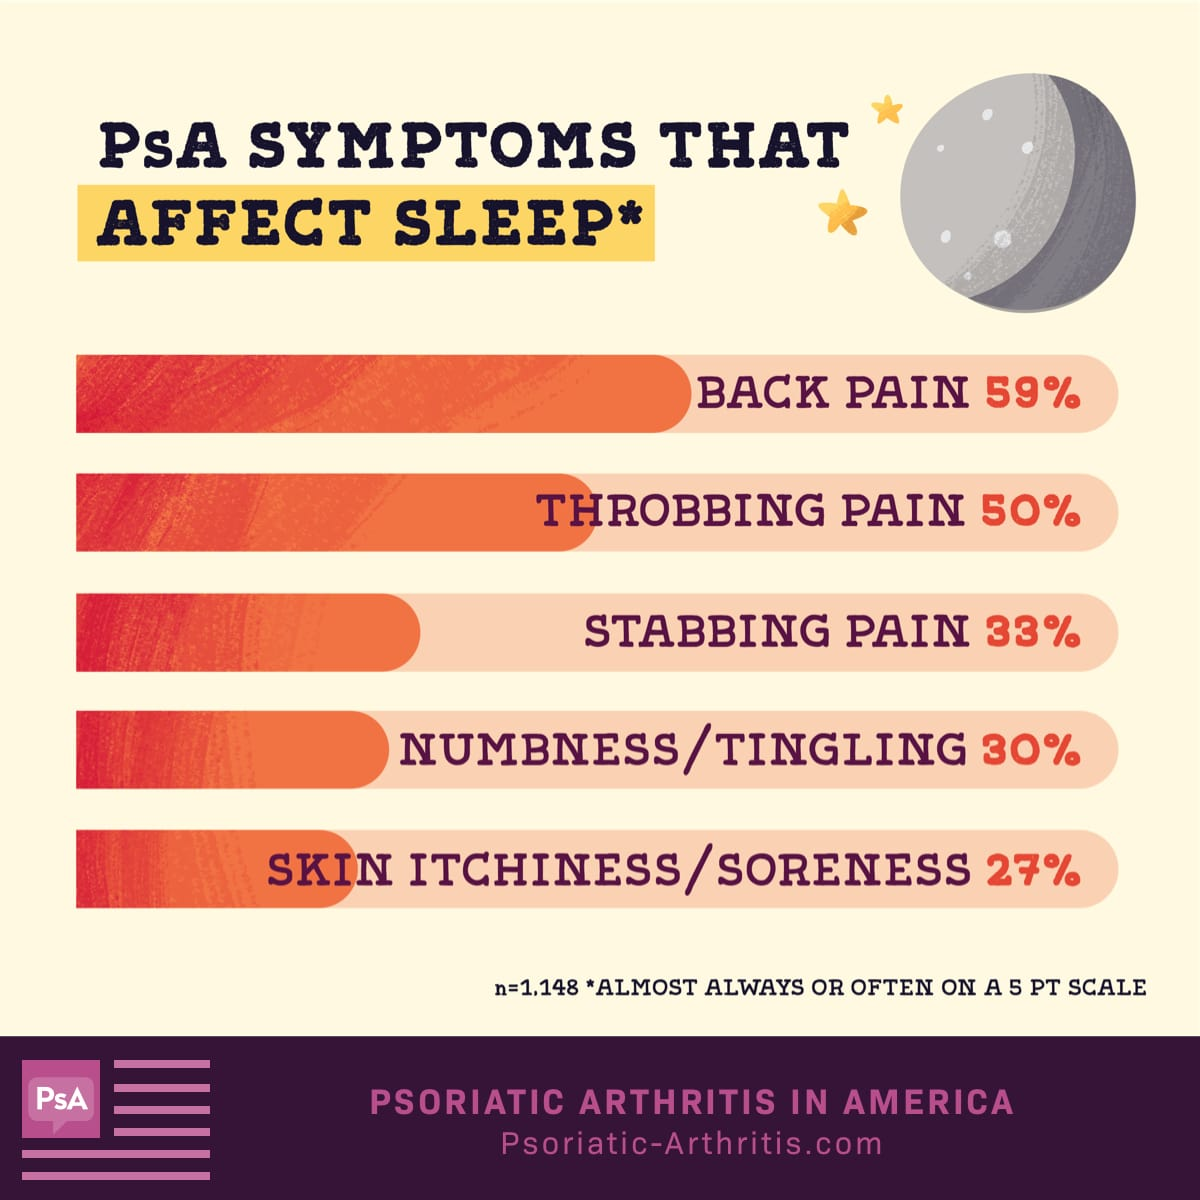 Symptoms that impact sleep the most are back pain, throbbing pain, numbness or tingling, skin itchiness or soreness and stabbing pain.